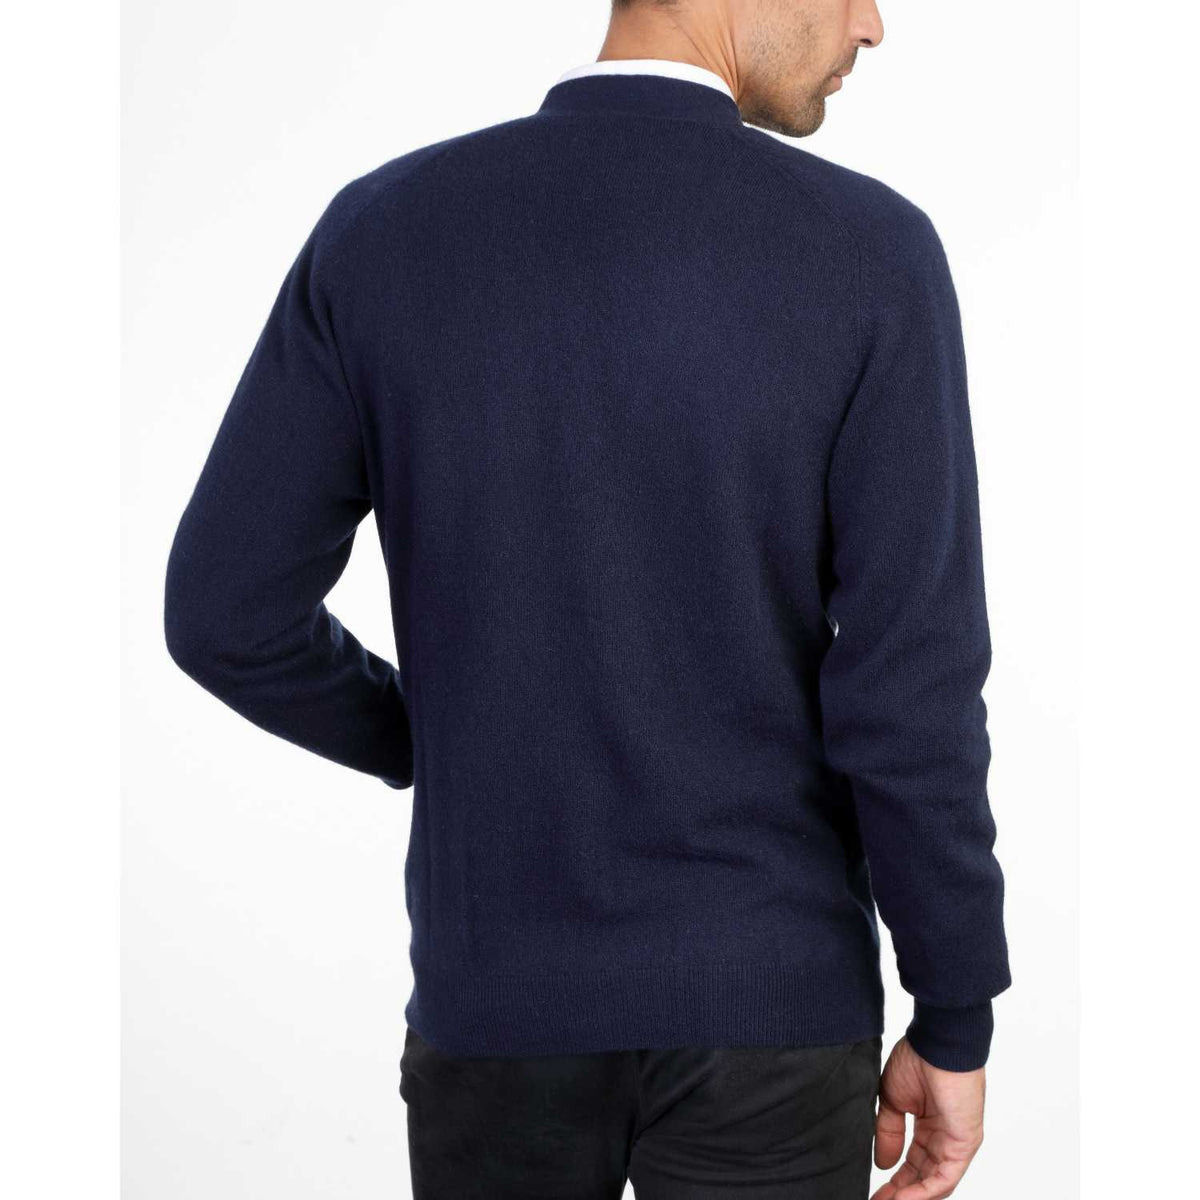 Mens Navy Blue Cashmere Cardigan | Back | Shop at The Cashmere Choice | London